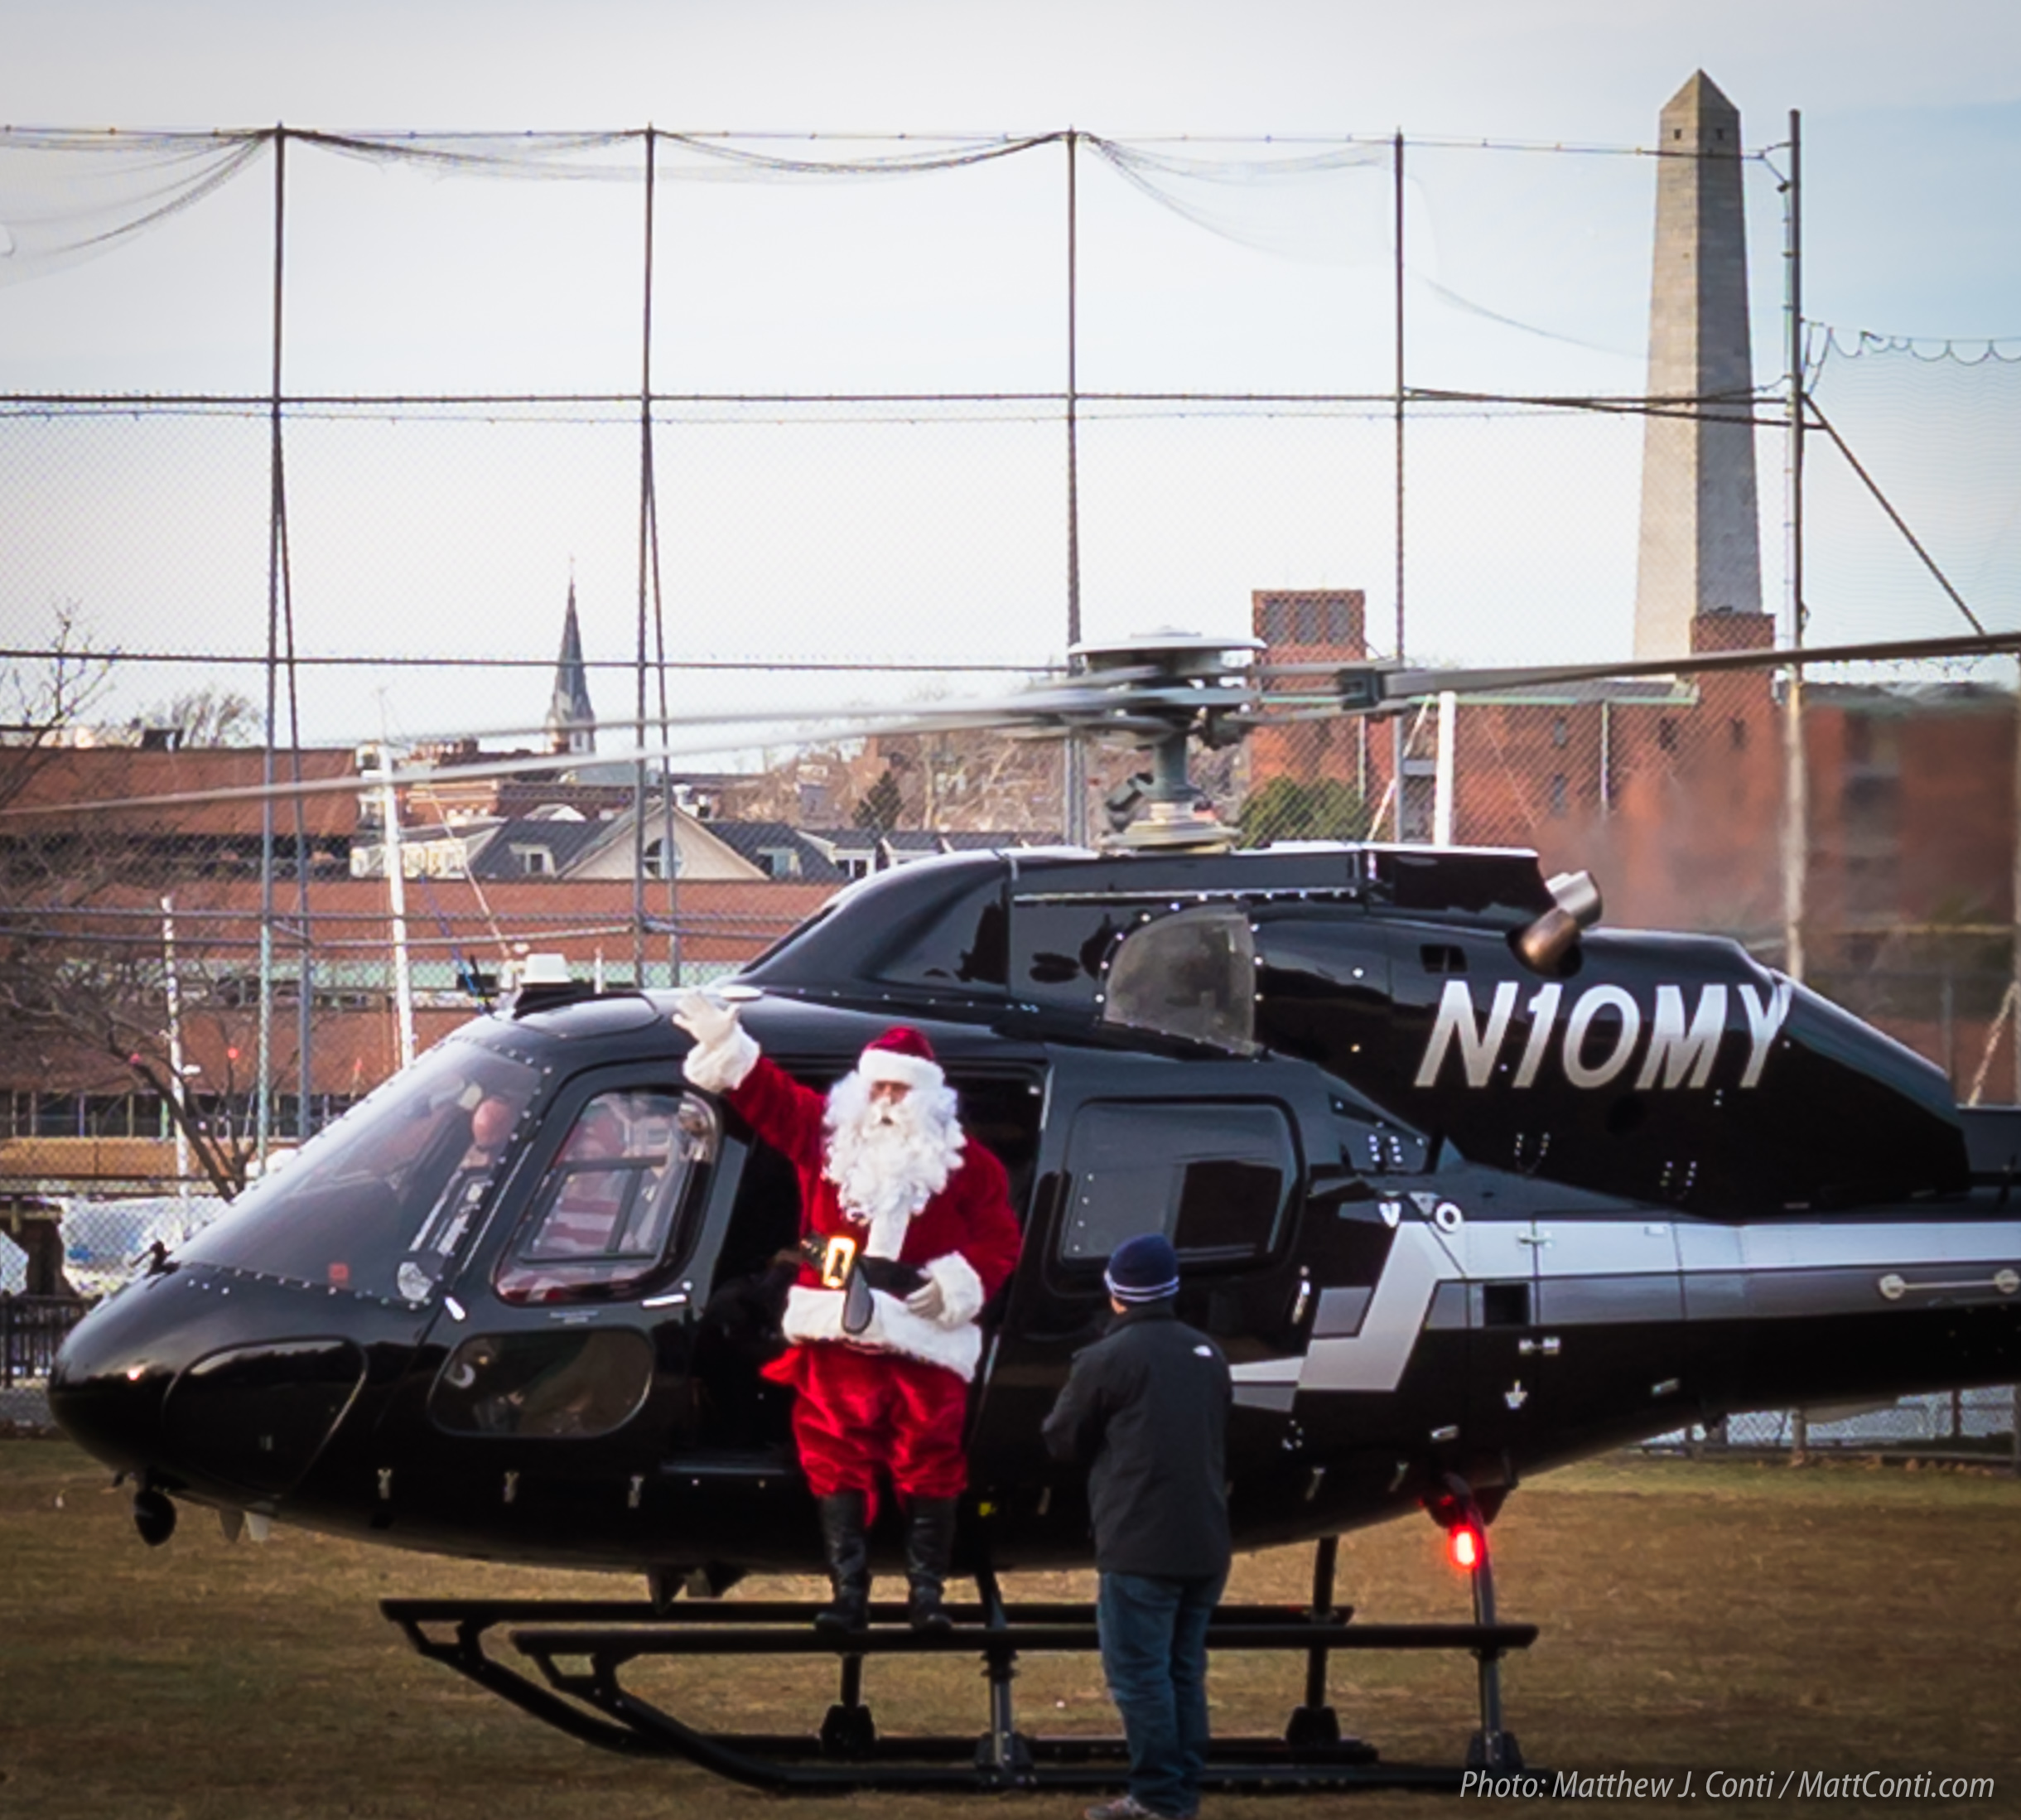 helicopter ride in philadelphia with Dec18 Tradition Santa Claus Arriving Helicopter Continues Bostons North 1993081 on Big bus tour further Staten Island Ferry General Interest Museum Nyc as well Transgender pride tshirts likewise Kim Kardashian Battles Conceal Curves Boards Helicopter Kanye West also Dec18 Tradition Santa Claus Arriving Helicopter Continues Bostons North 1993081.